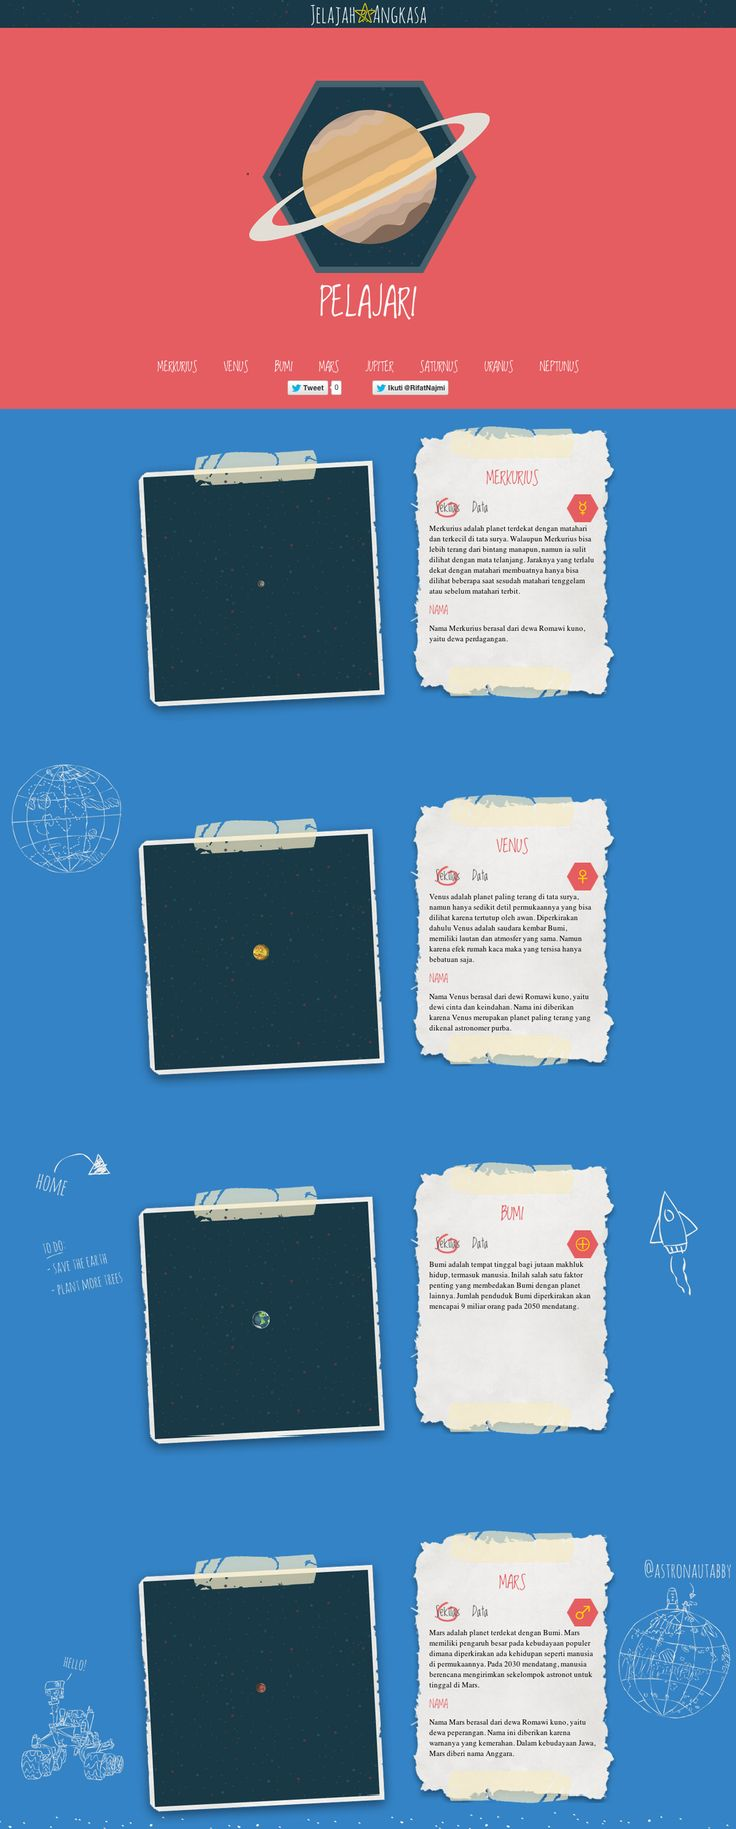 'Jelajah Angkasa' which translates to 'Roaming Space' is a neat informational one pager illustrating various planets and their stats. Love the spanning planets and good use of whitespace, looking forward to an English version!